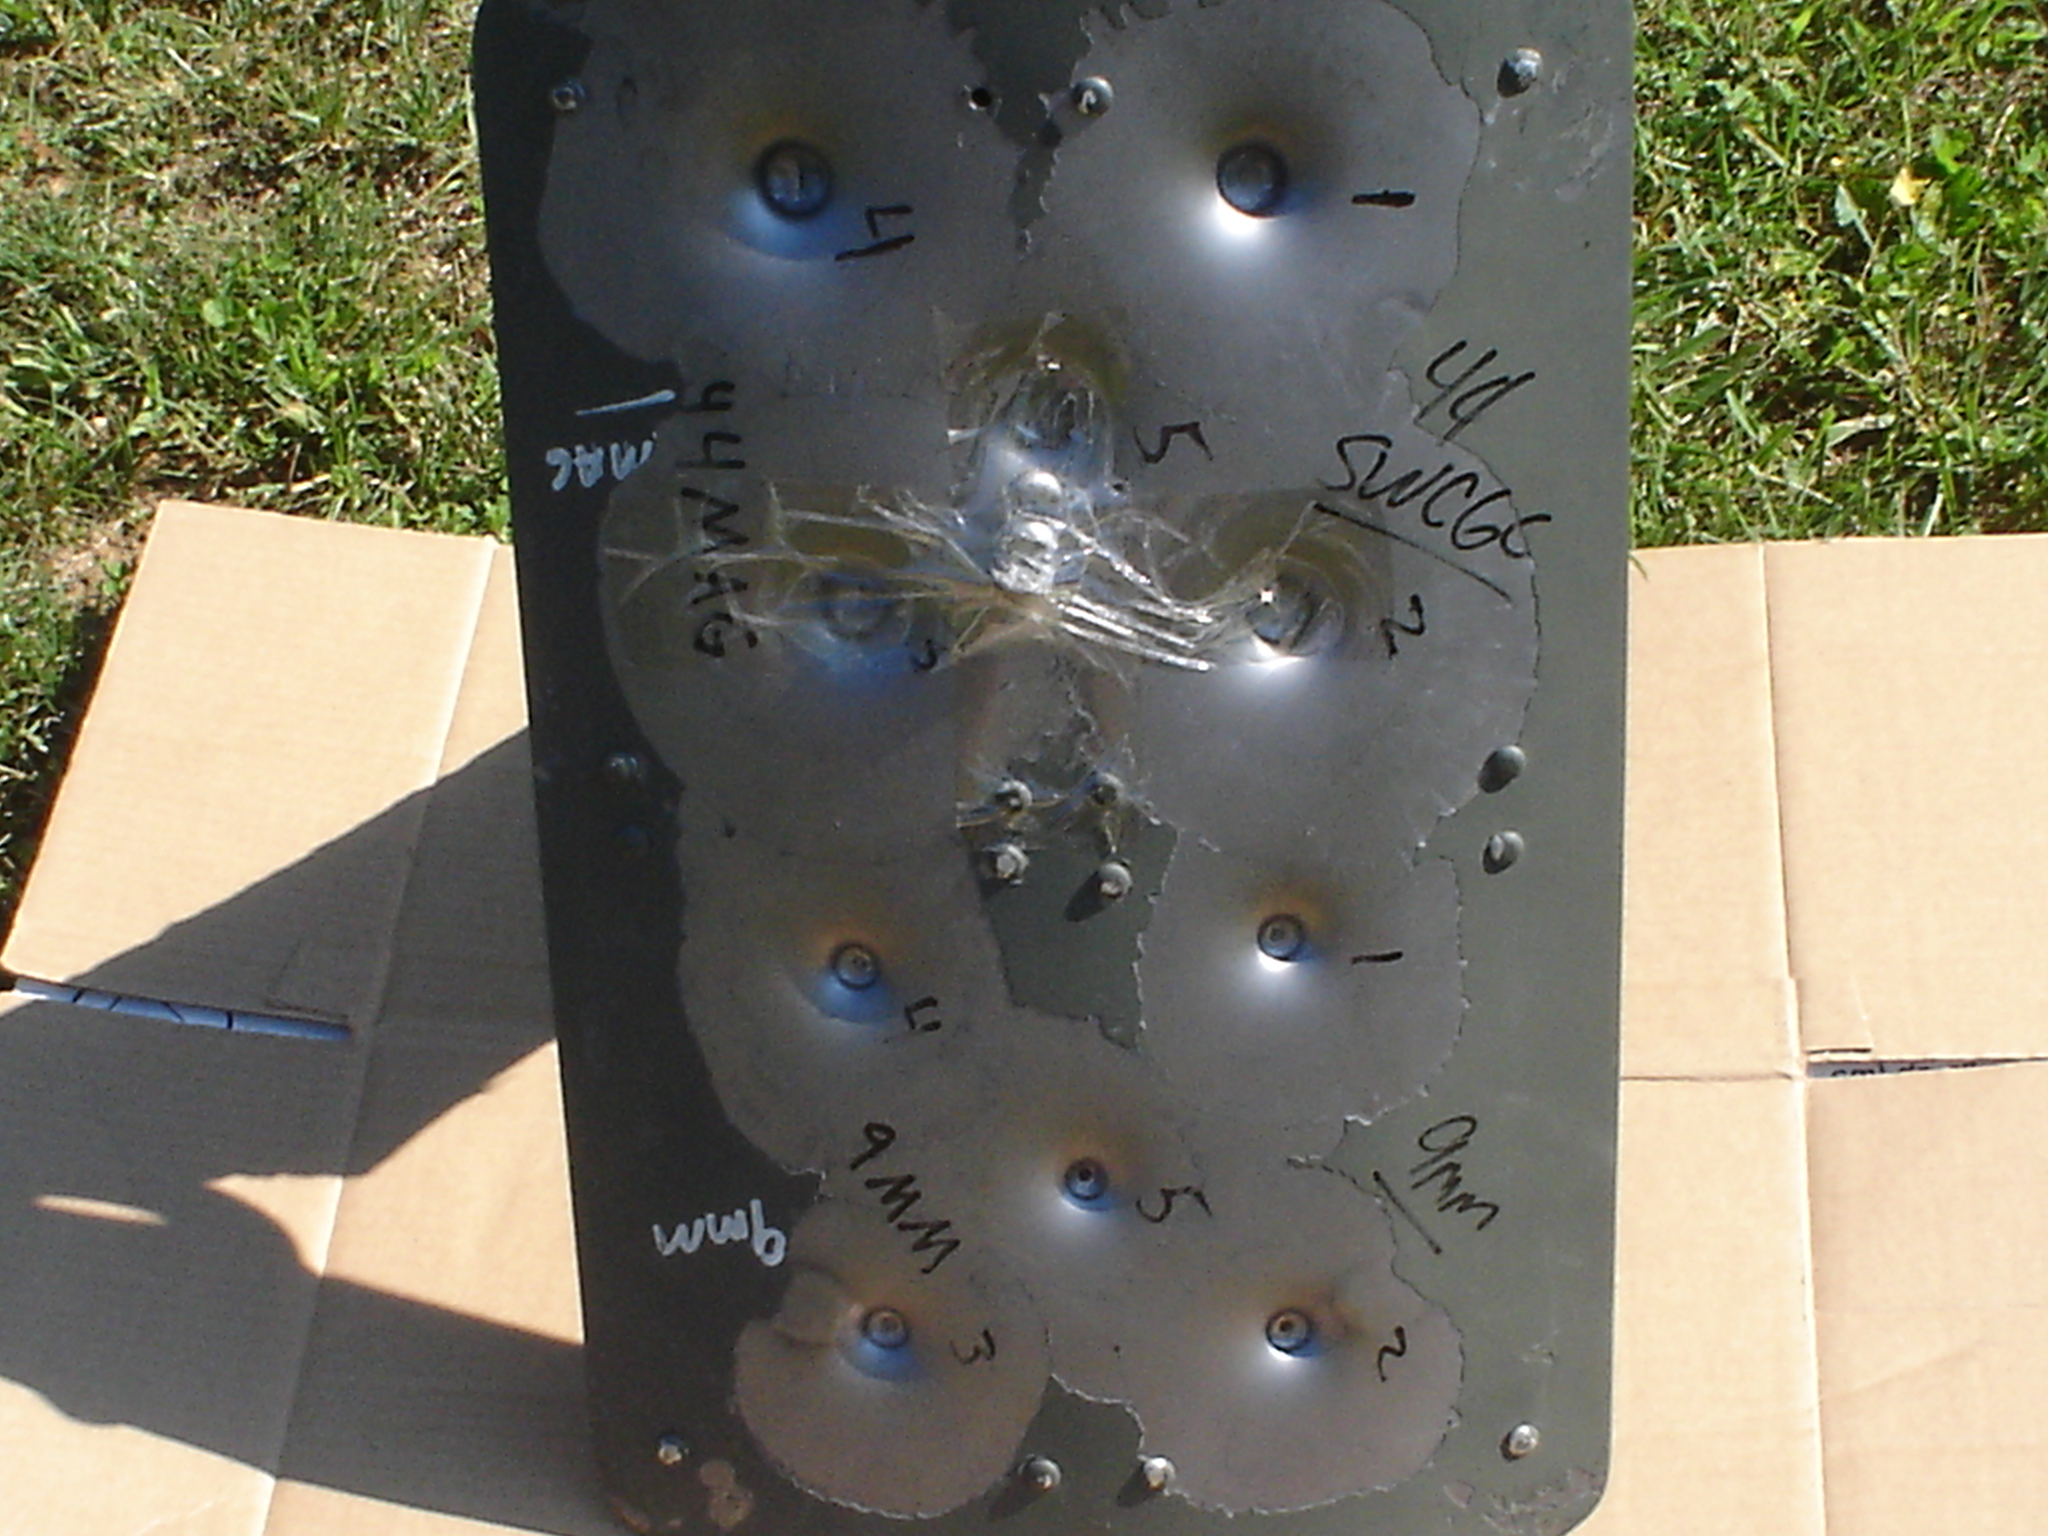 MINI SHIELD%20TEST%20LEVEL%20IIIA%20PASS%20006 <!  :en  >Prototype Mini Battle Shield/Mini Combat Shield Gets Shoot Tested (Pics)<!  :  >